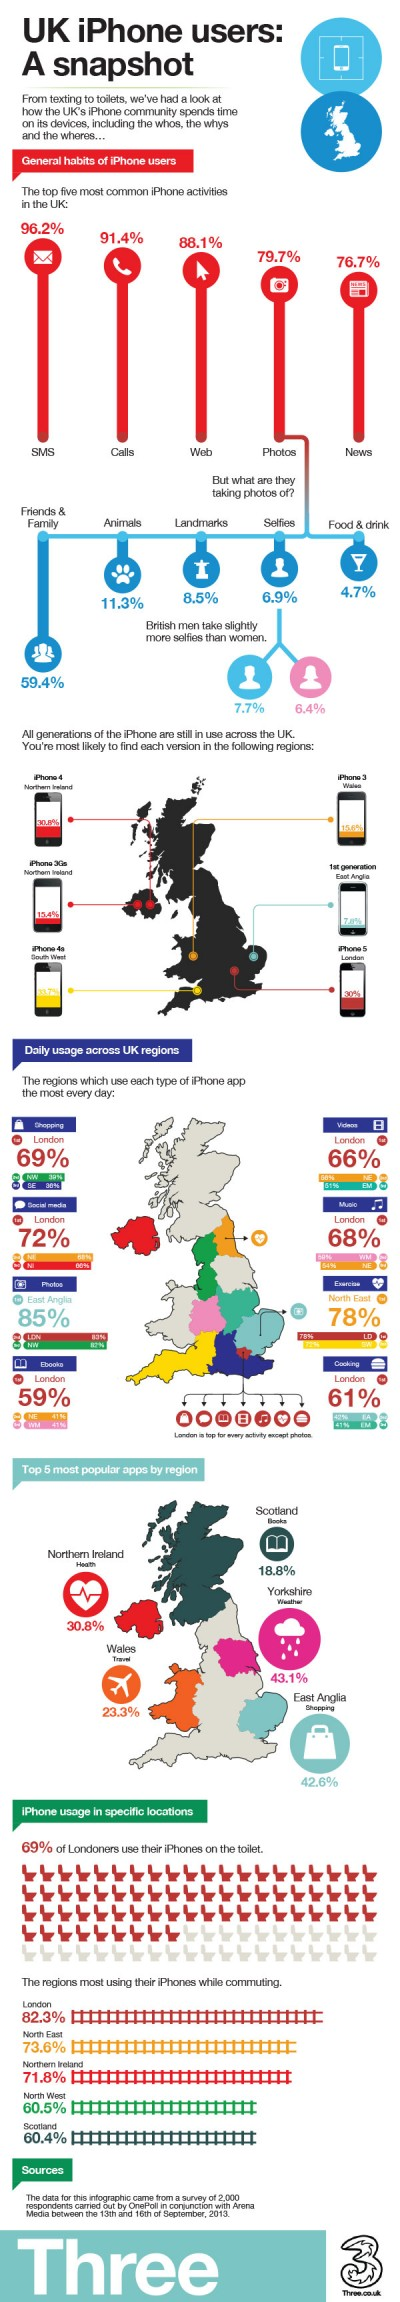 UK iPhone Users: A snapshot [Infographic]